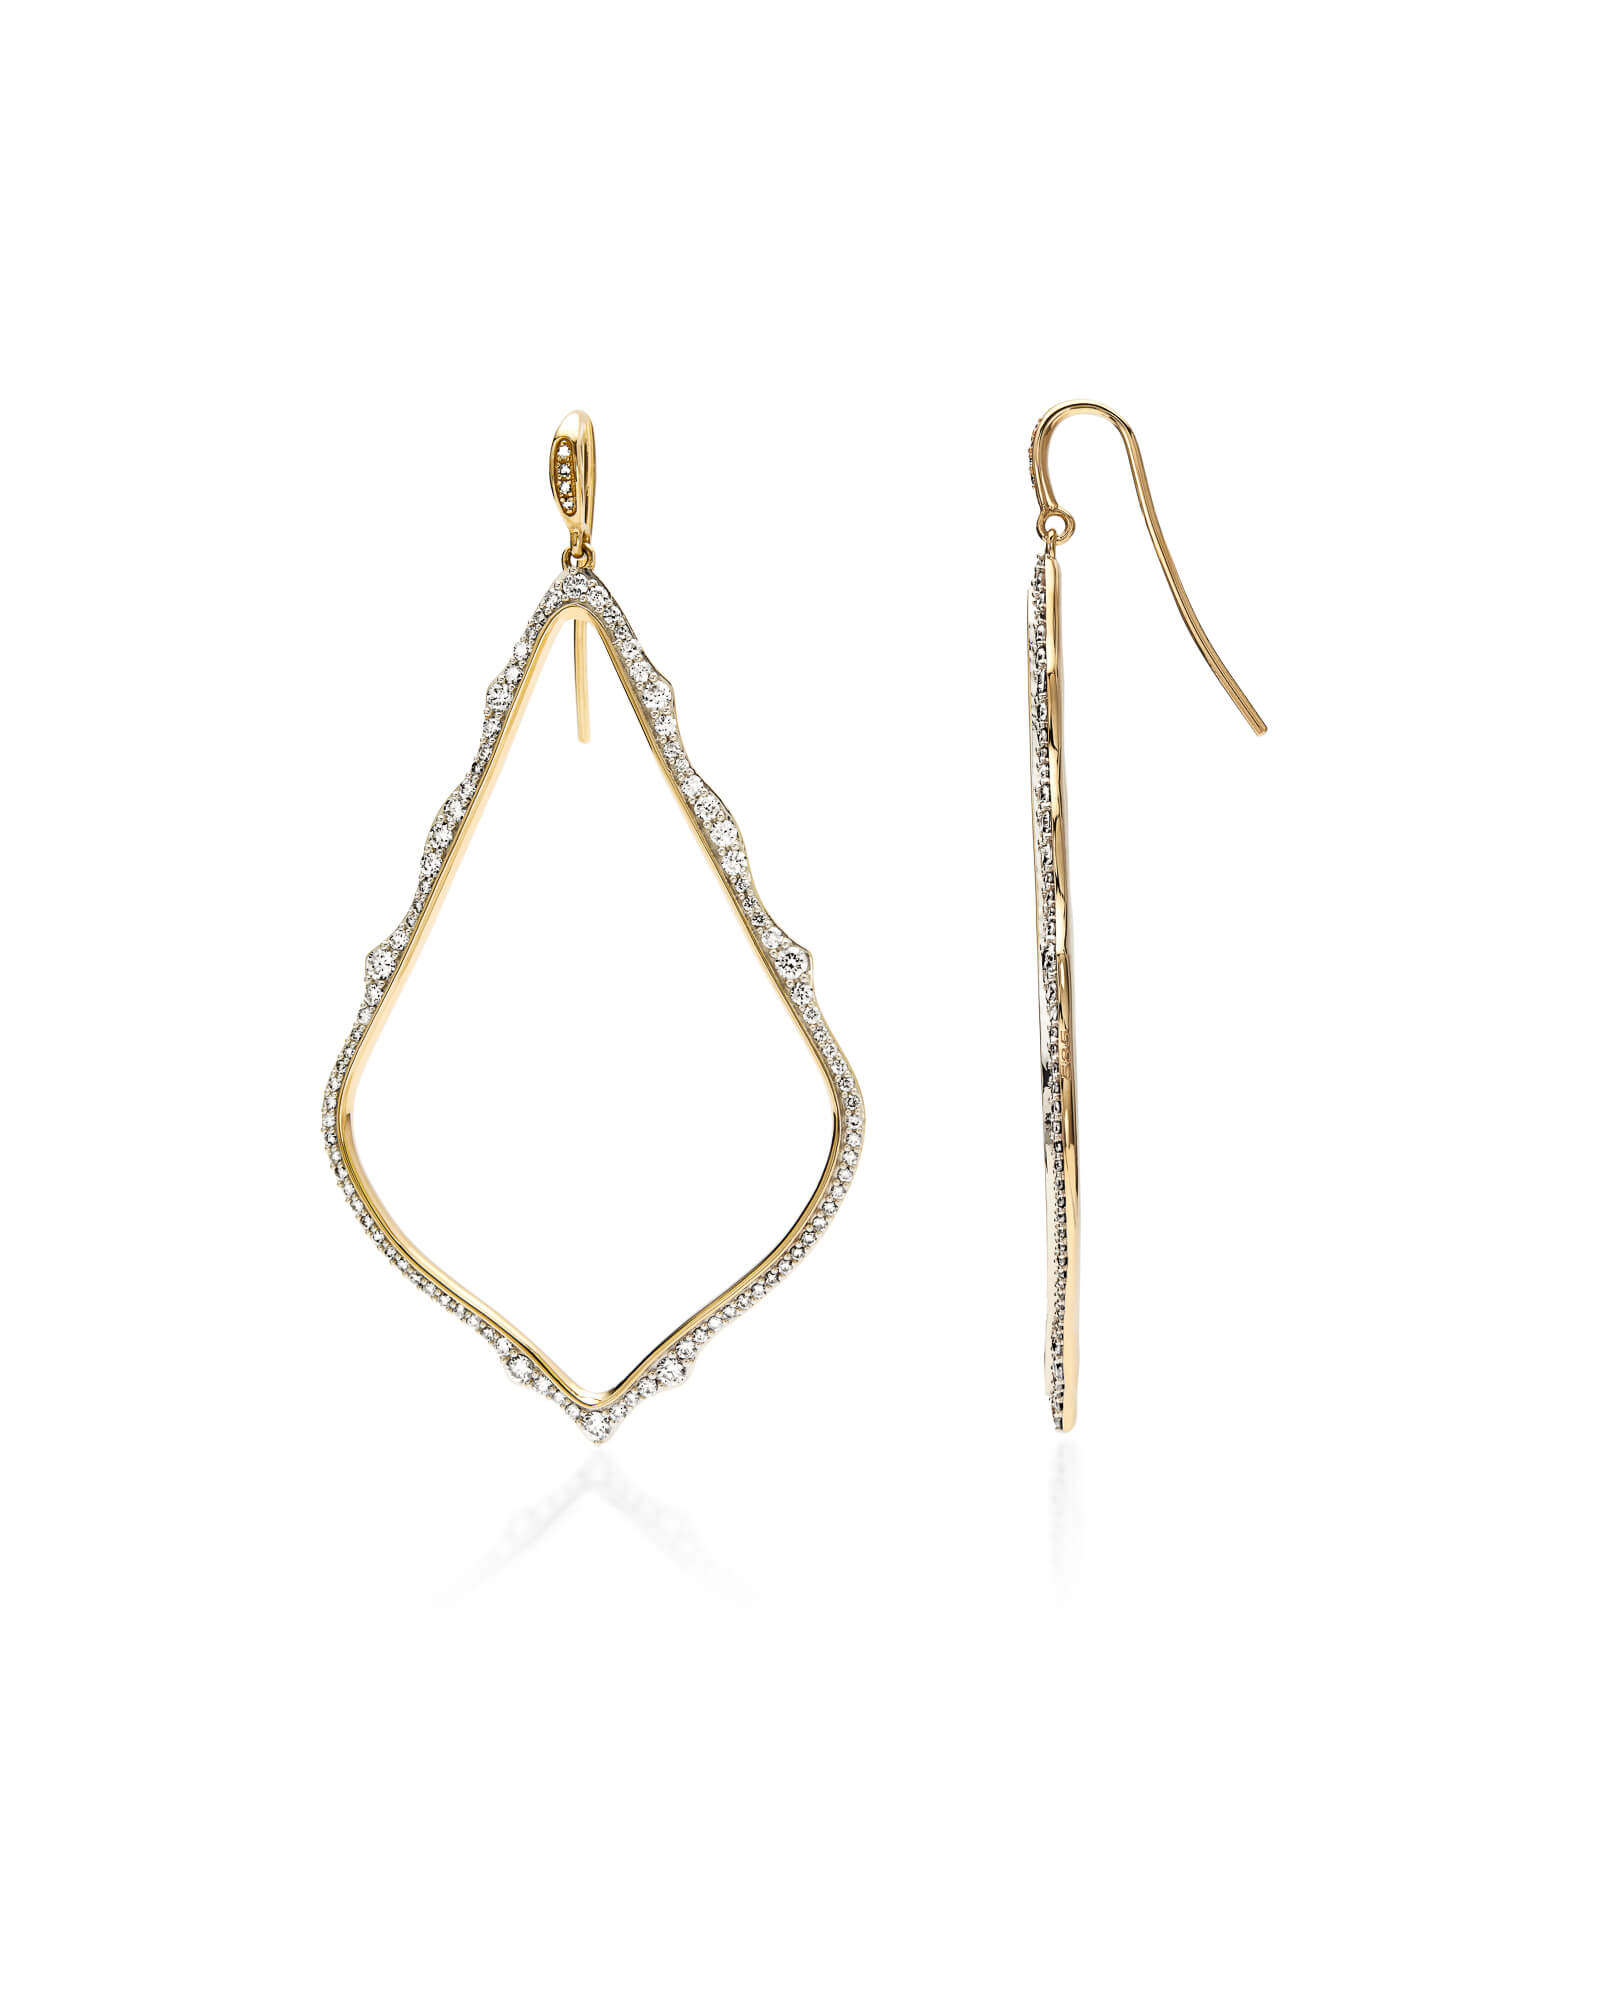 Sophee 14k Yellow Gold Drop Earrings in White Diamond